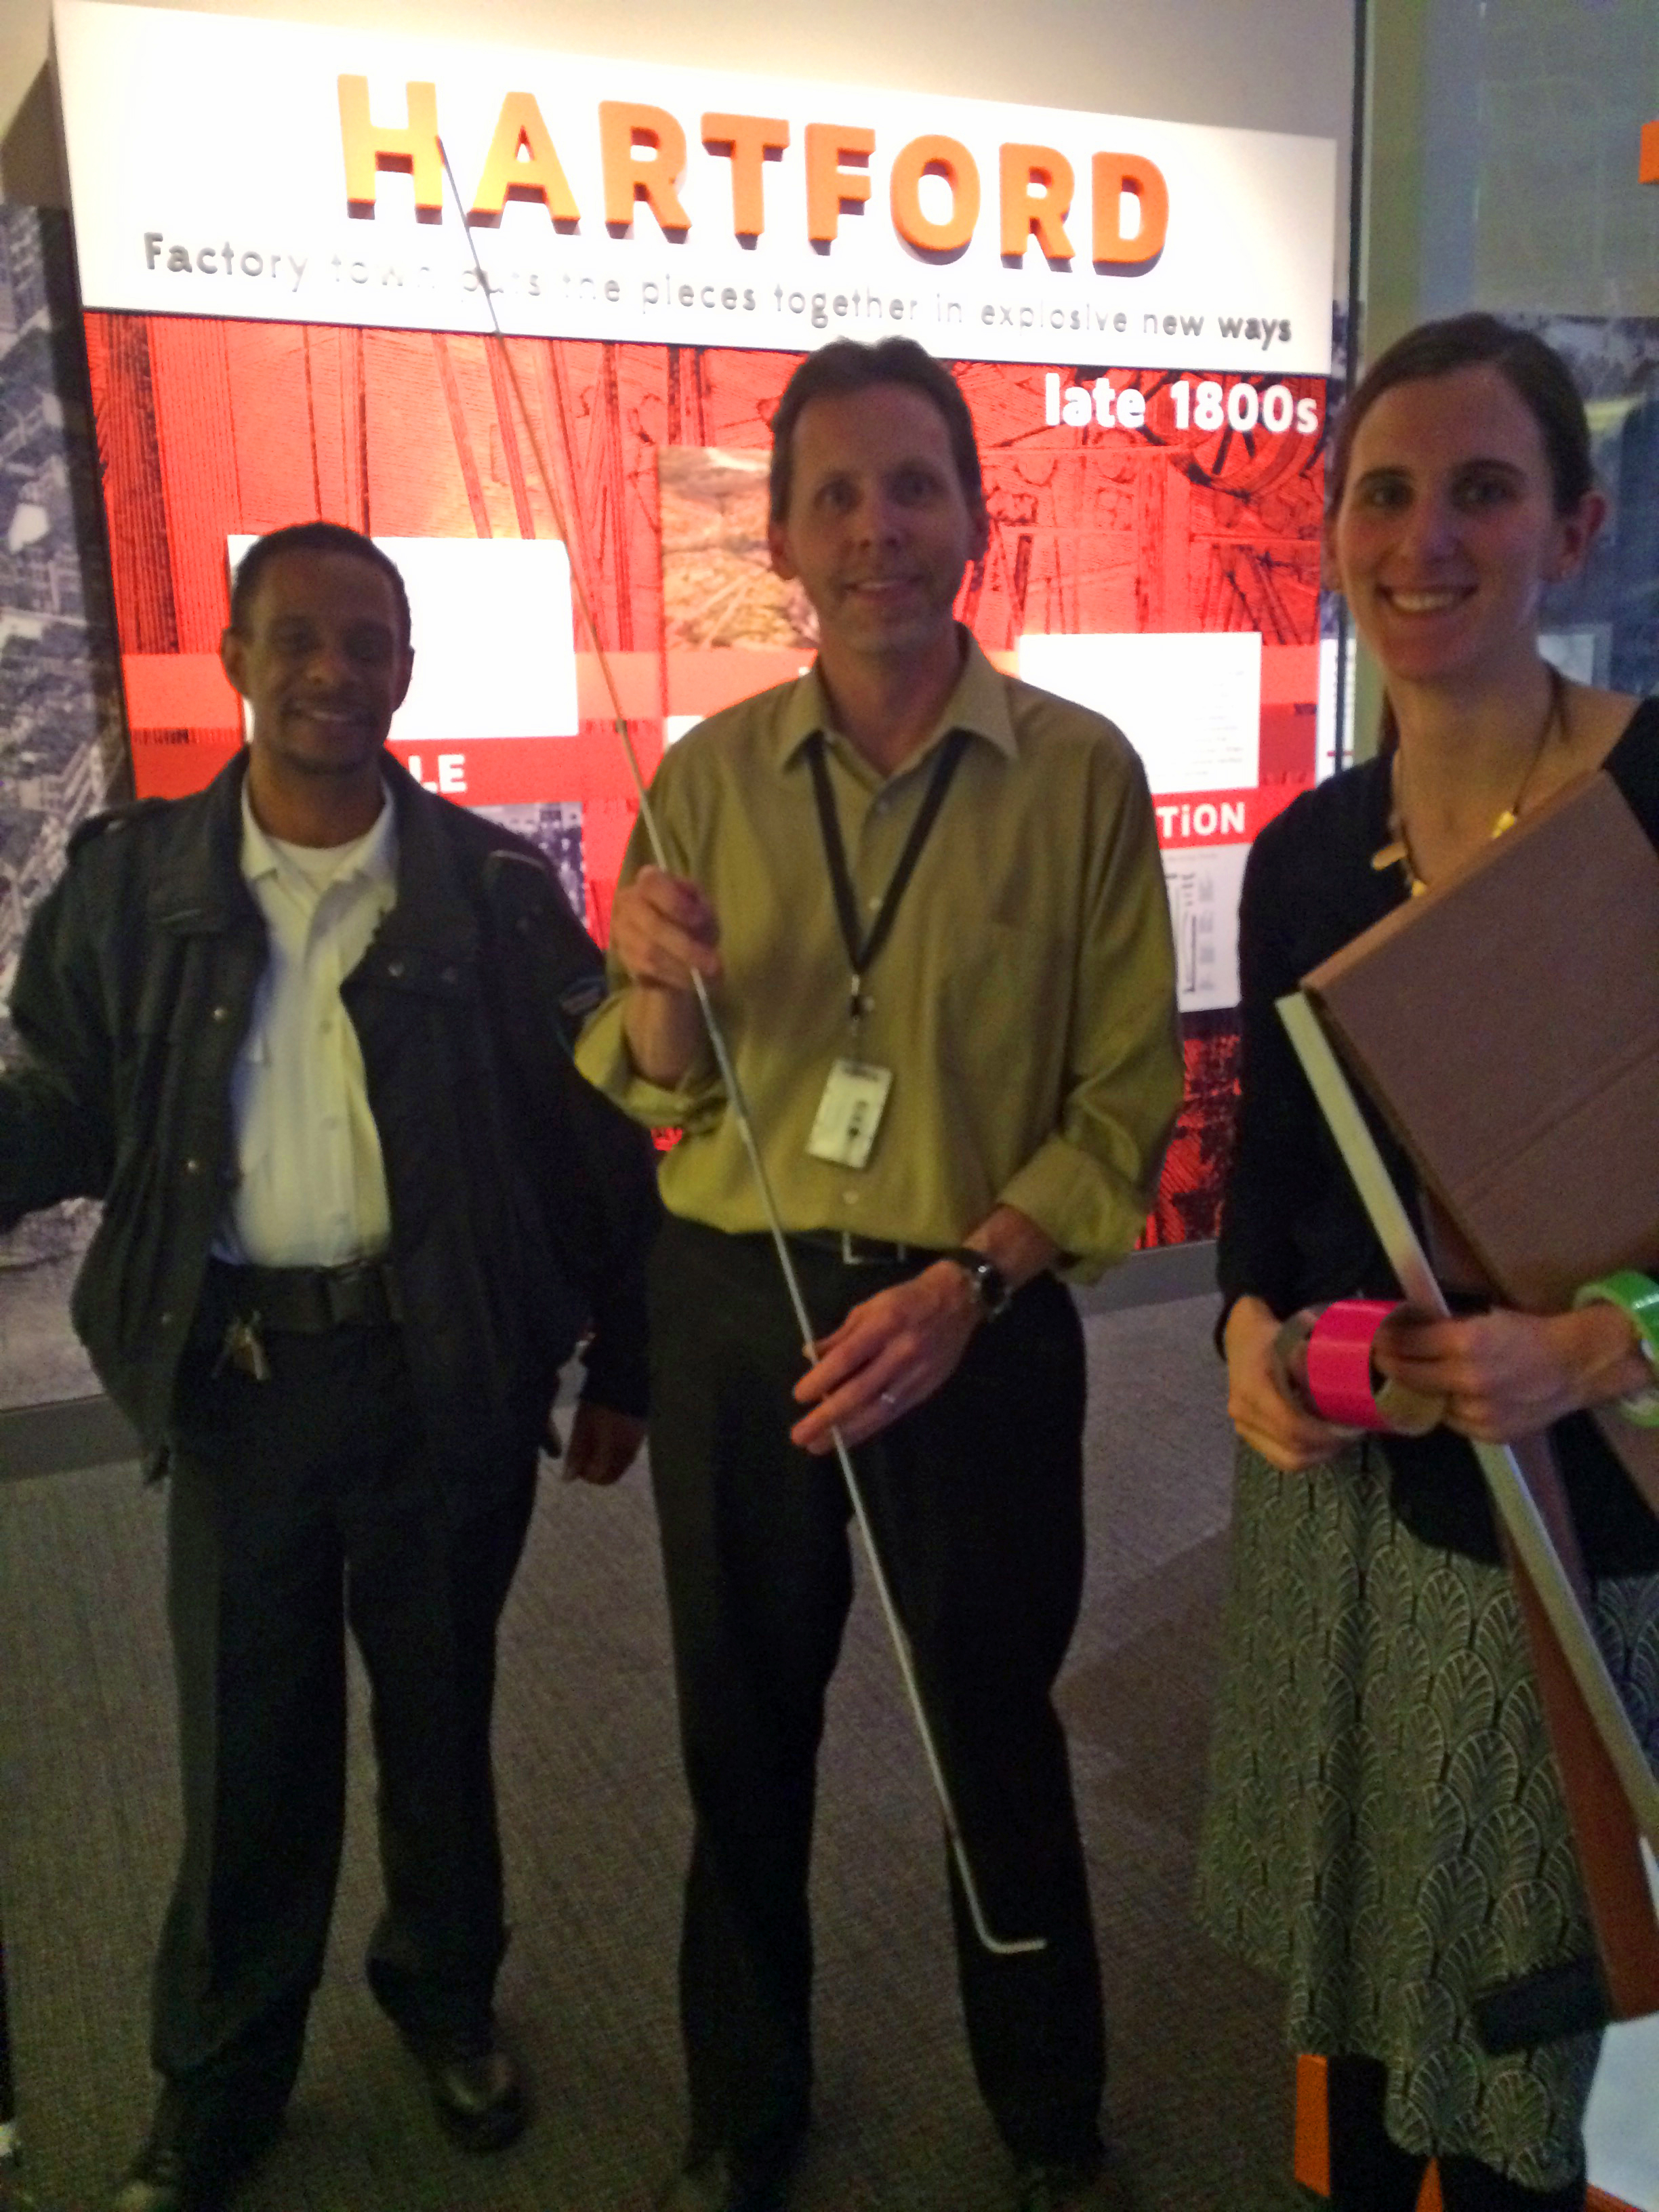 National Museum of American History staff members Sergeant Patrick Newman, Tim Pula, and Jocelyn Knauf